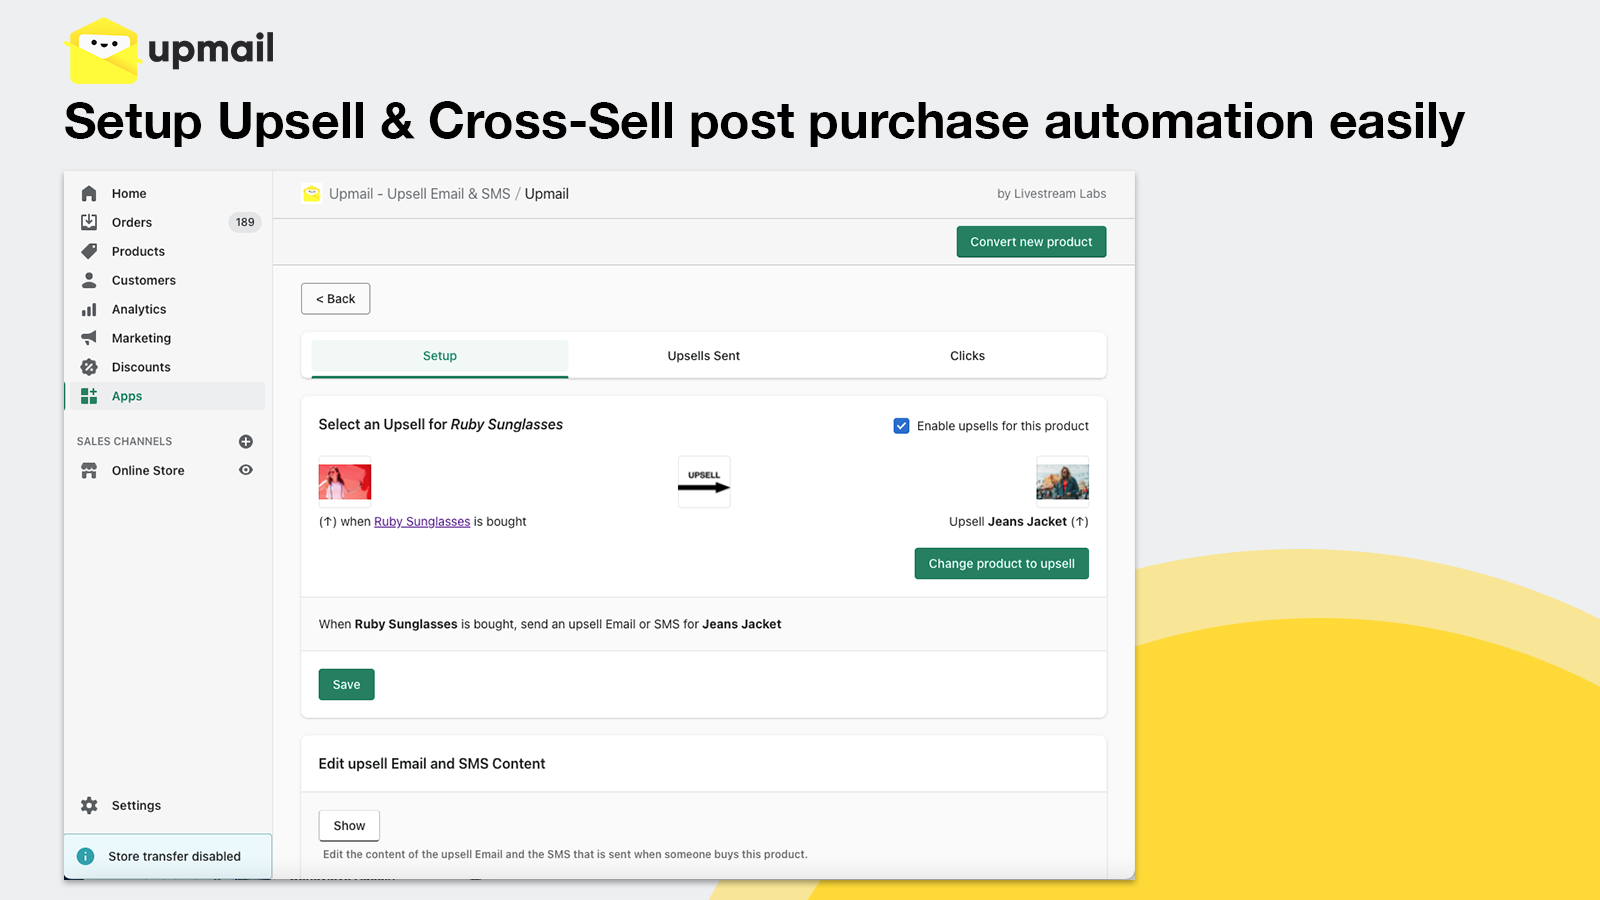 Setup Upsell & Cross-Sell post purchase automation easily